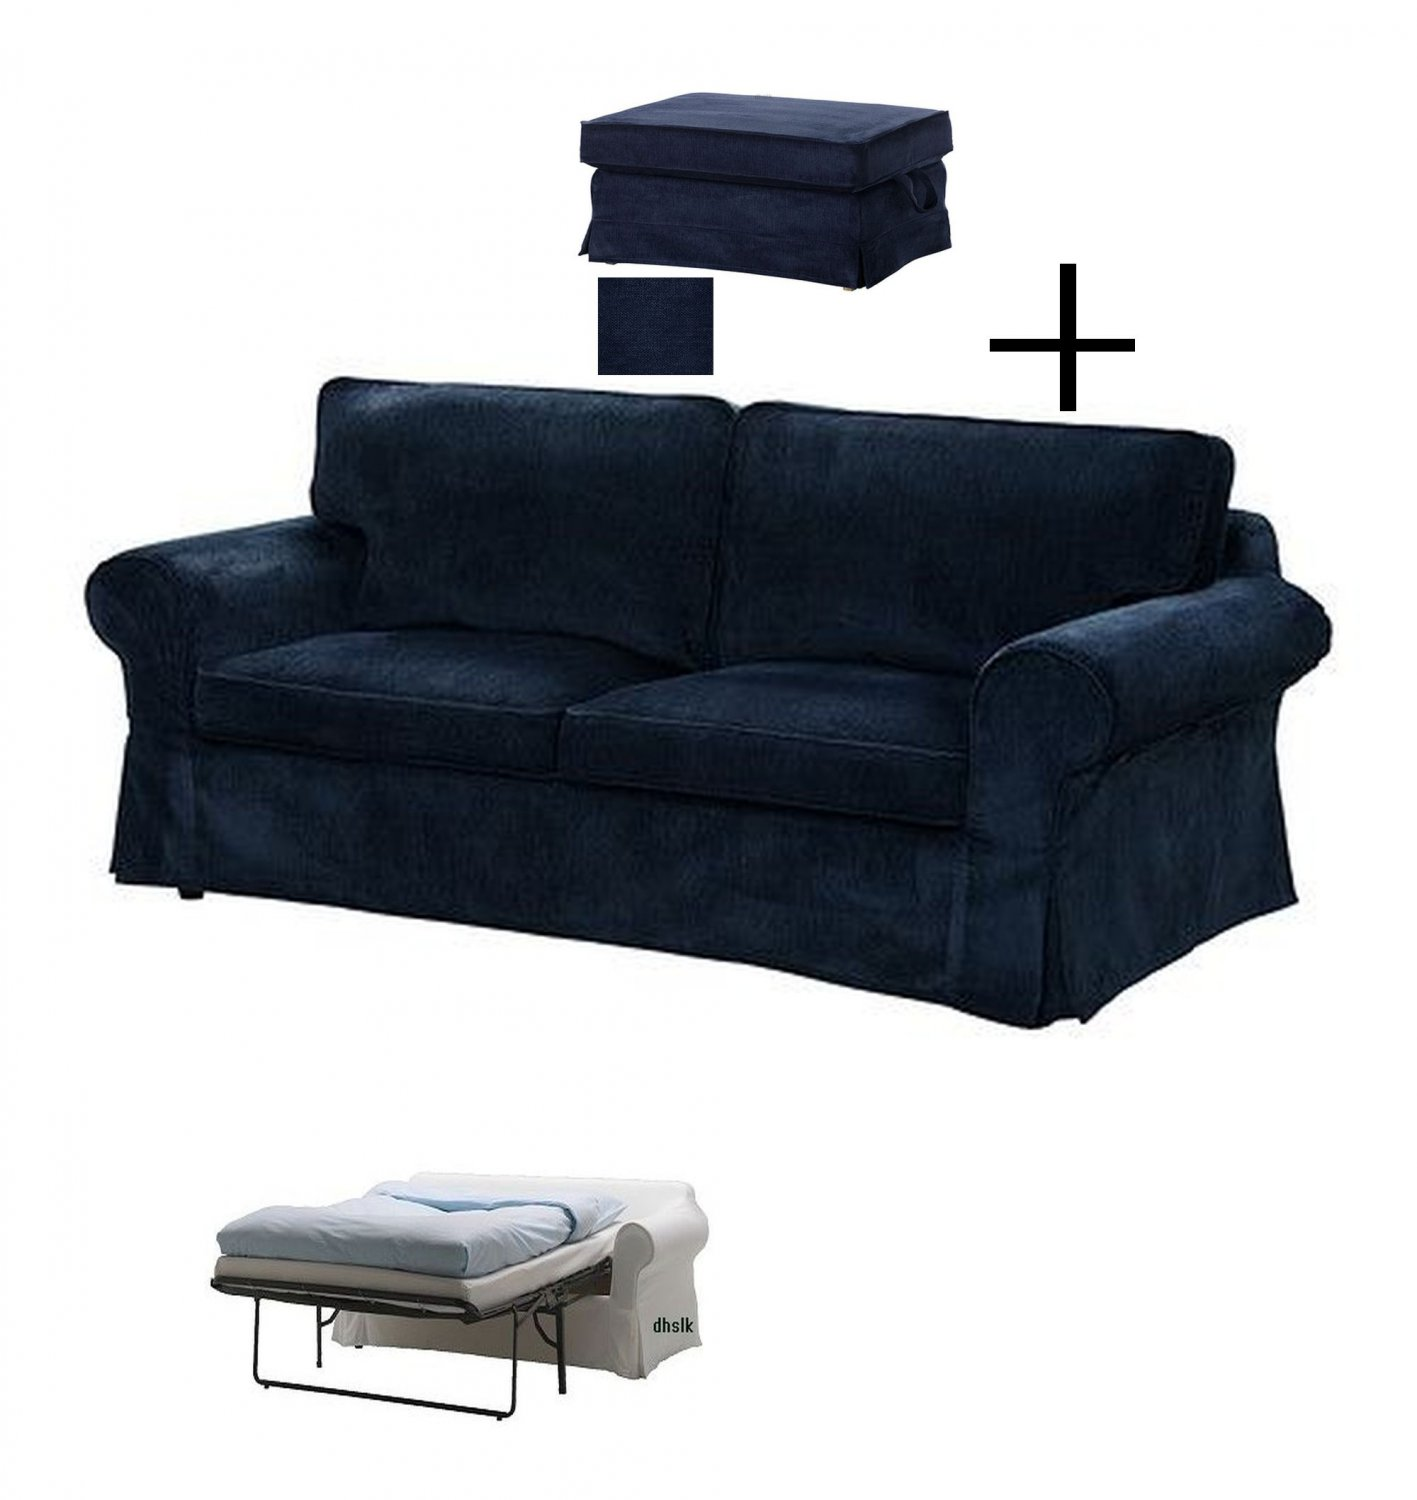 Ikea ektorp slipcovers for sofa bed and footstool vellinge for Futon covers ikea